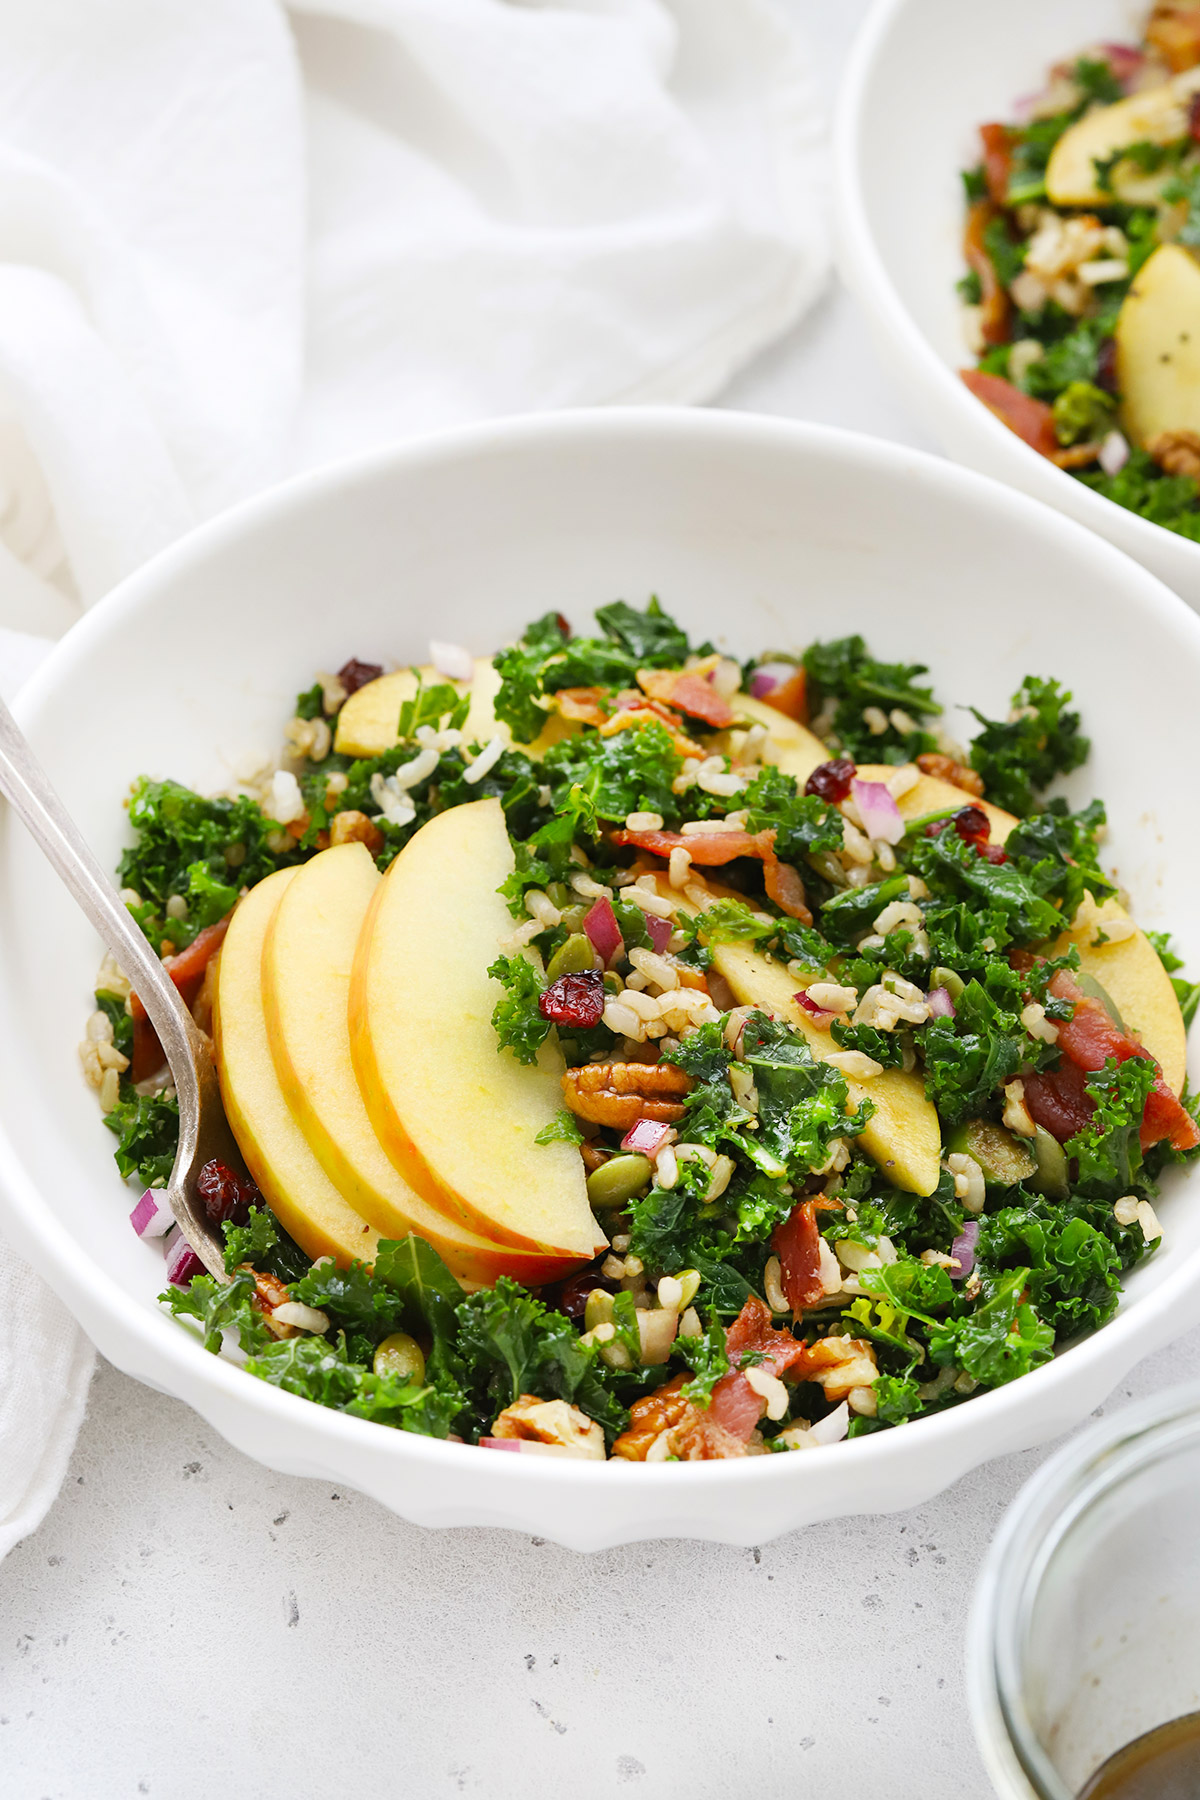 Front view of bowls of Harvest Apple Kale Salad with Balsamic Dressing